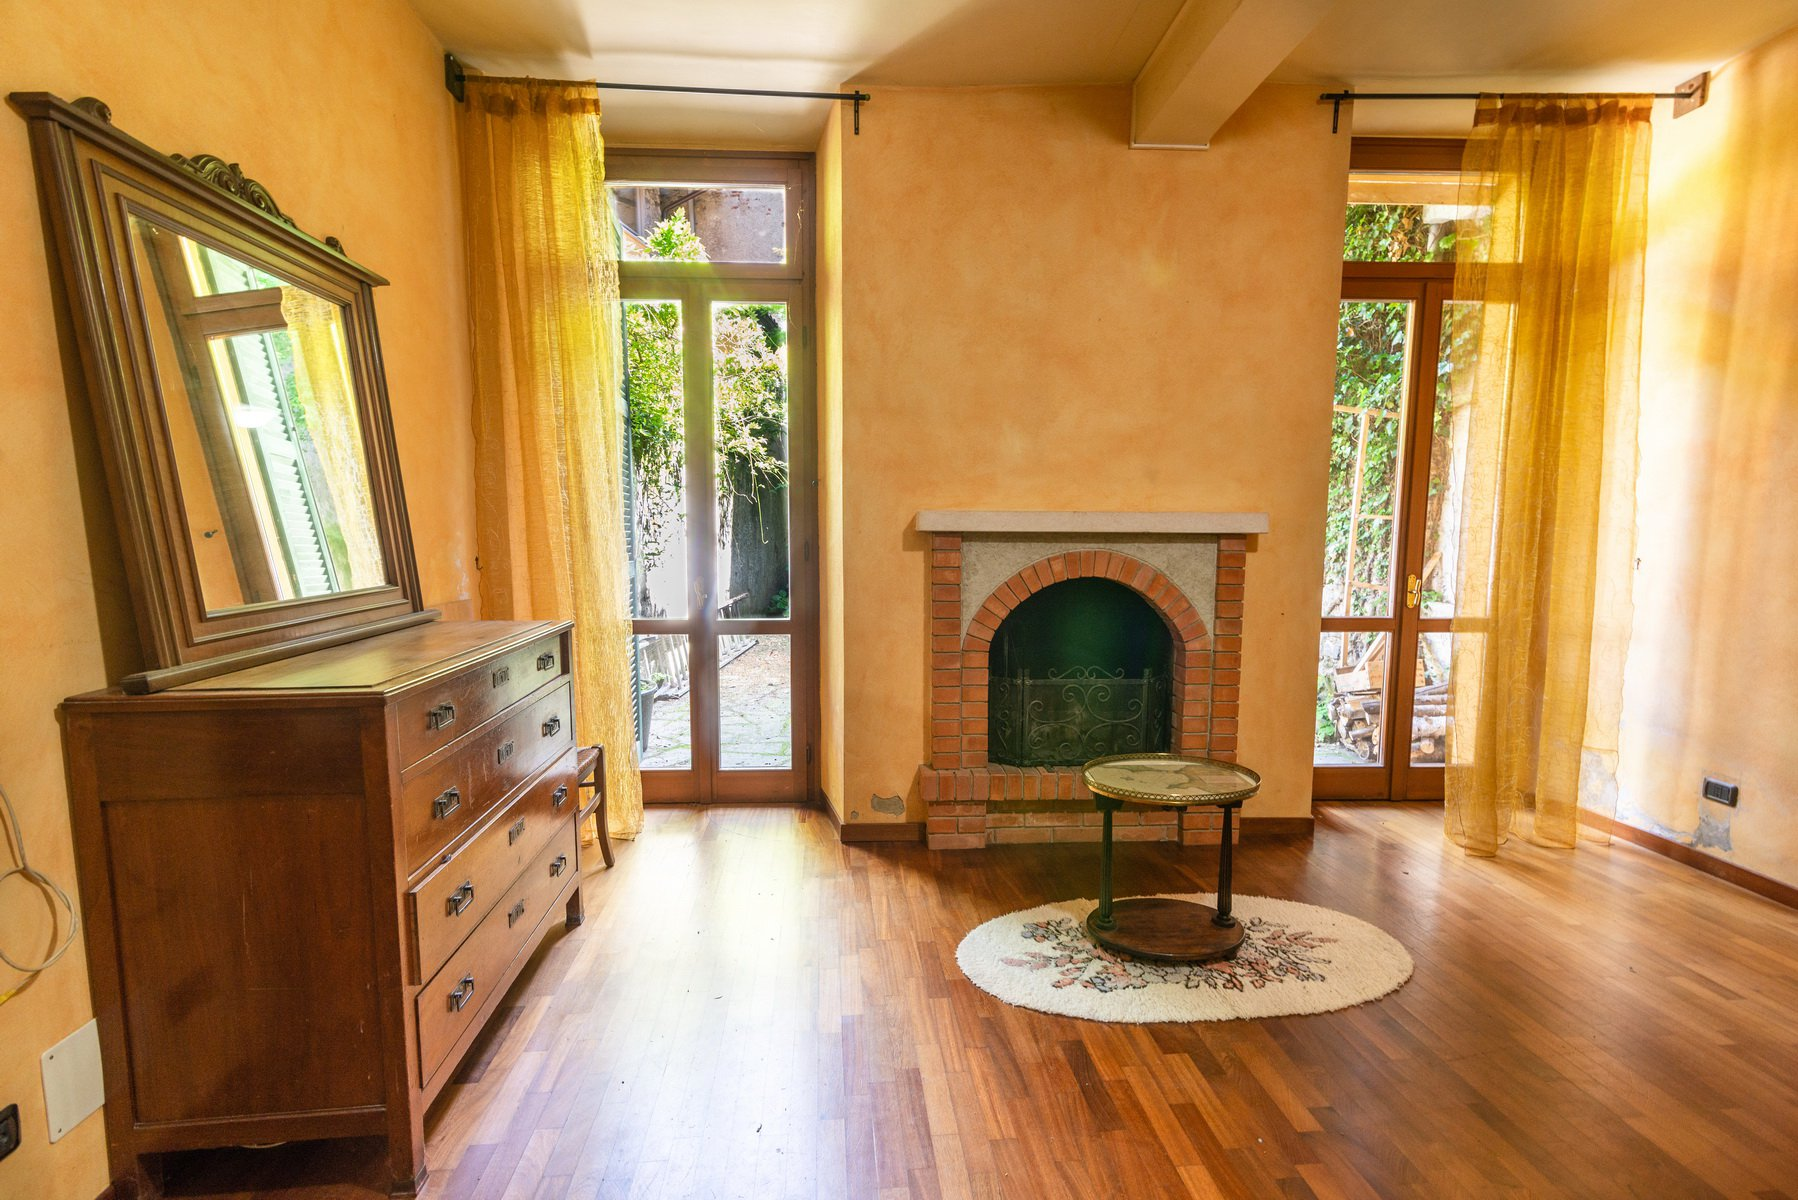 Historic house for sale in Lesa- living room with fireplace